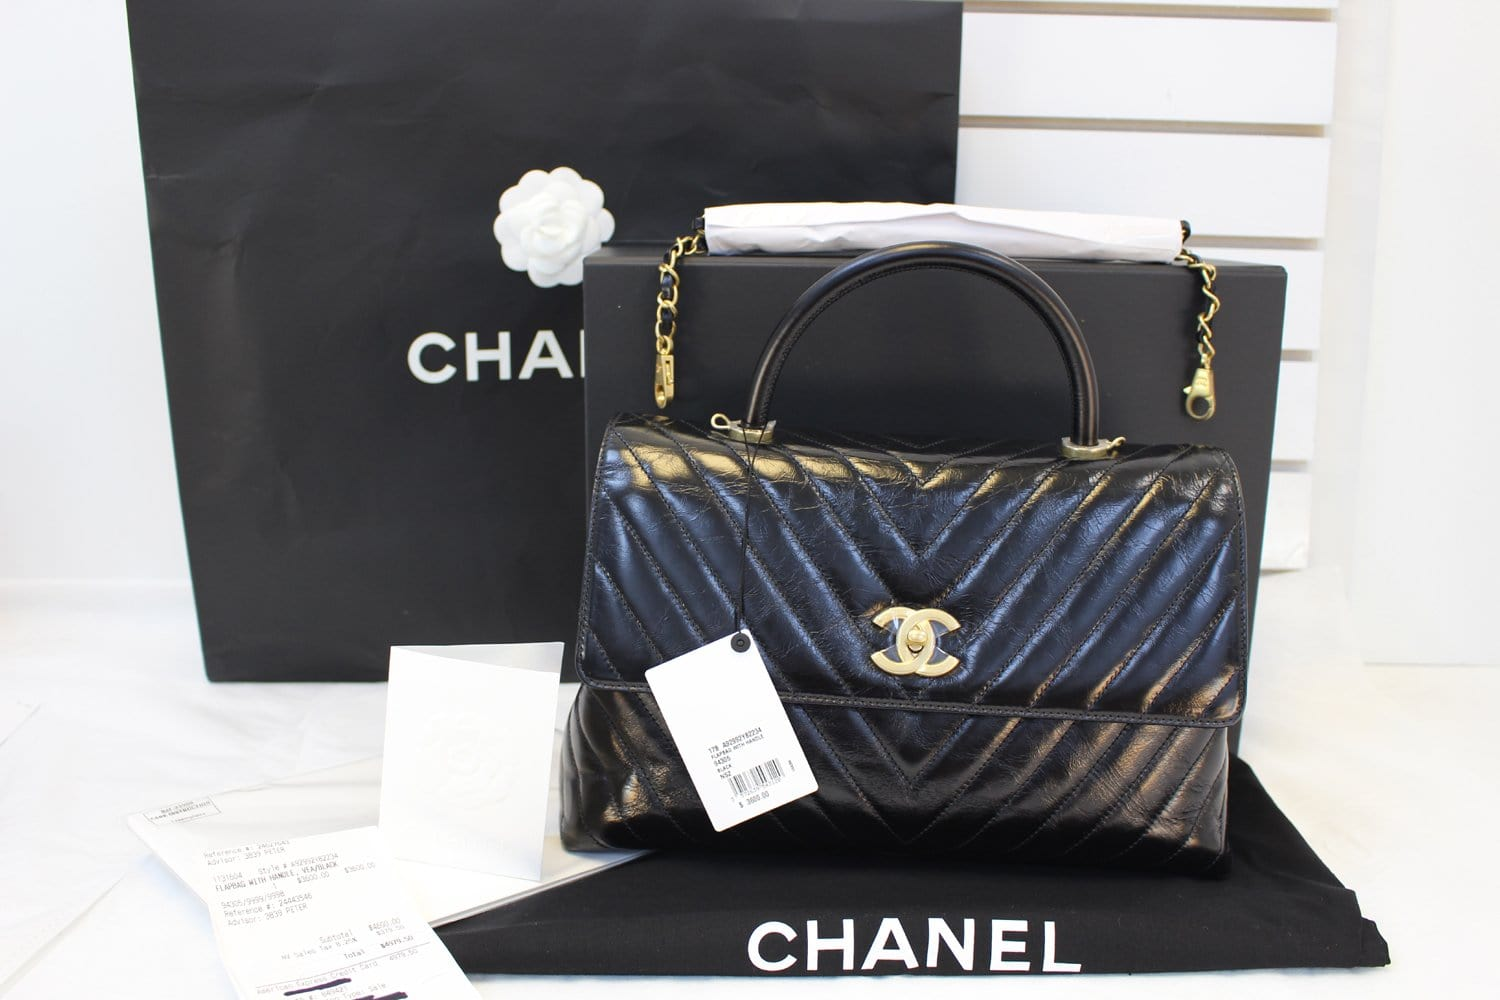 d40a29dd0ba42 Authentic CHANEL Black Quilted Lambskin Chevron Leather Top Handle Bag  TT1564